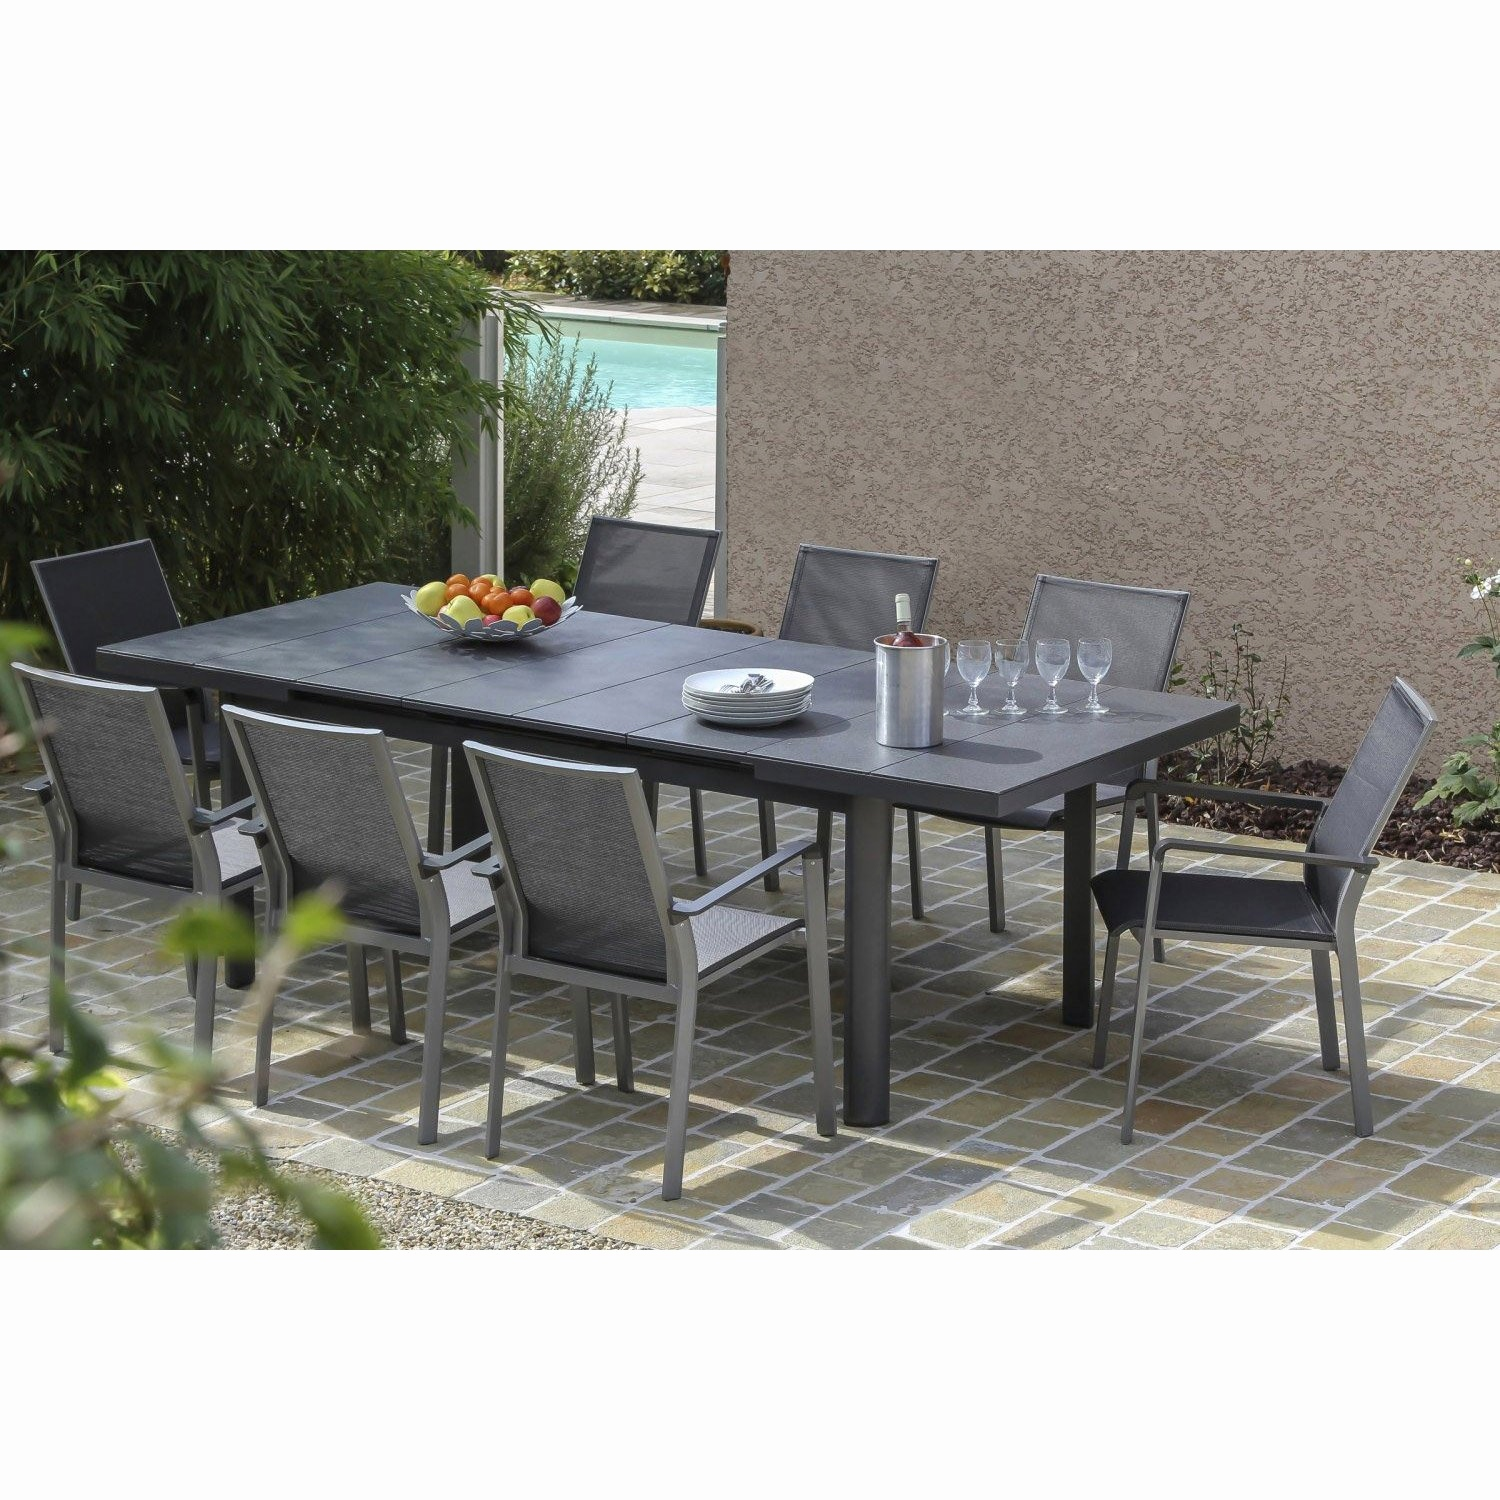 Table Merlin Personnes Jardin Leroy 12 De kwPn0O